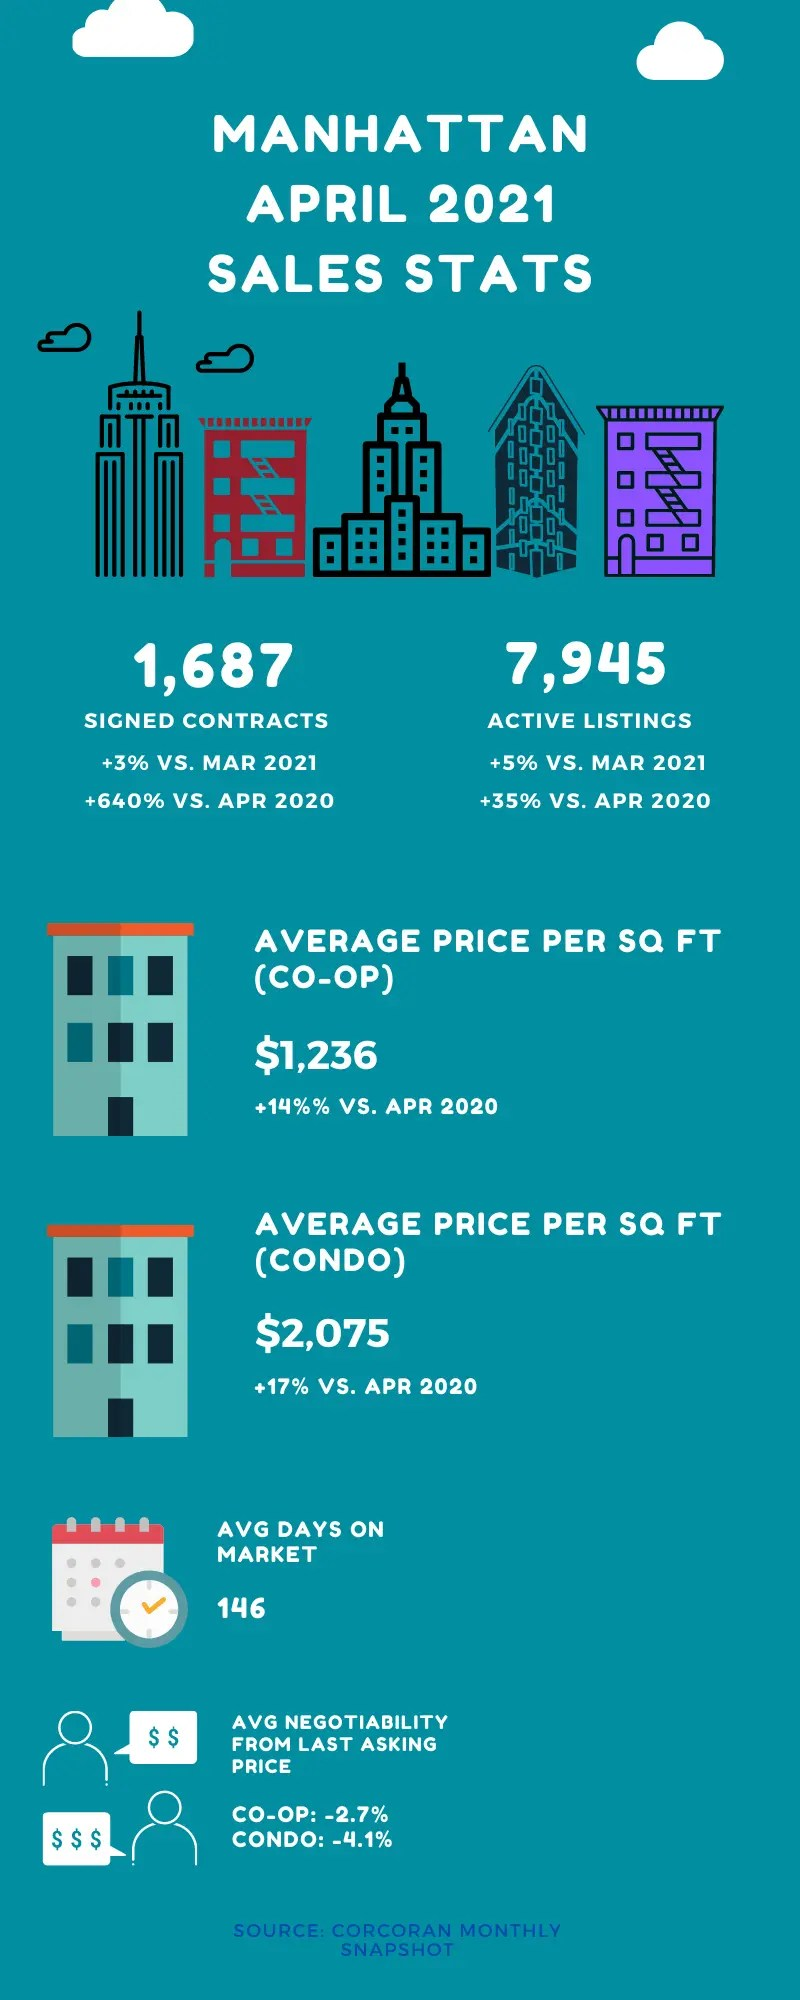 Infographic showing sales market stats for Manhattan in the month of April 2021